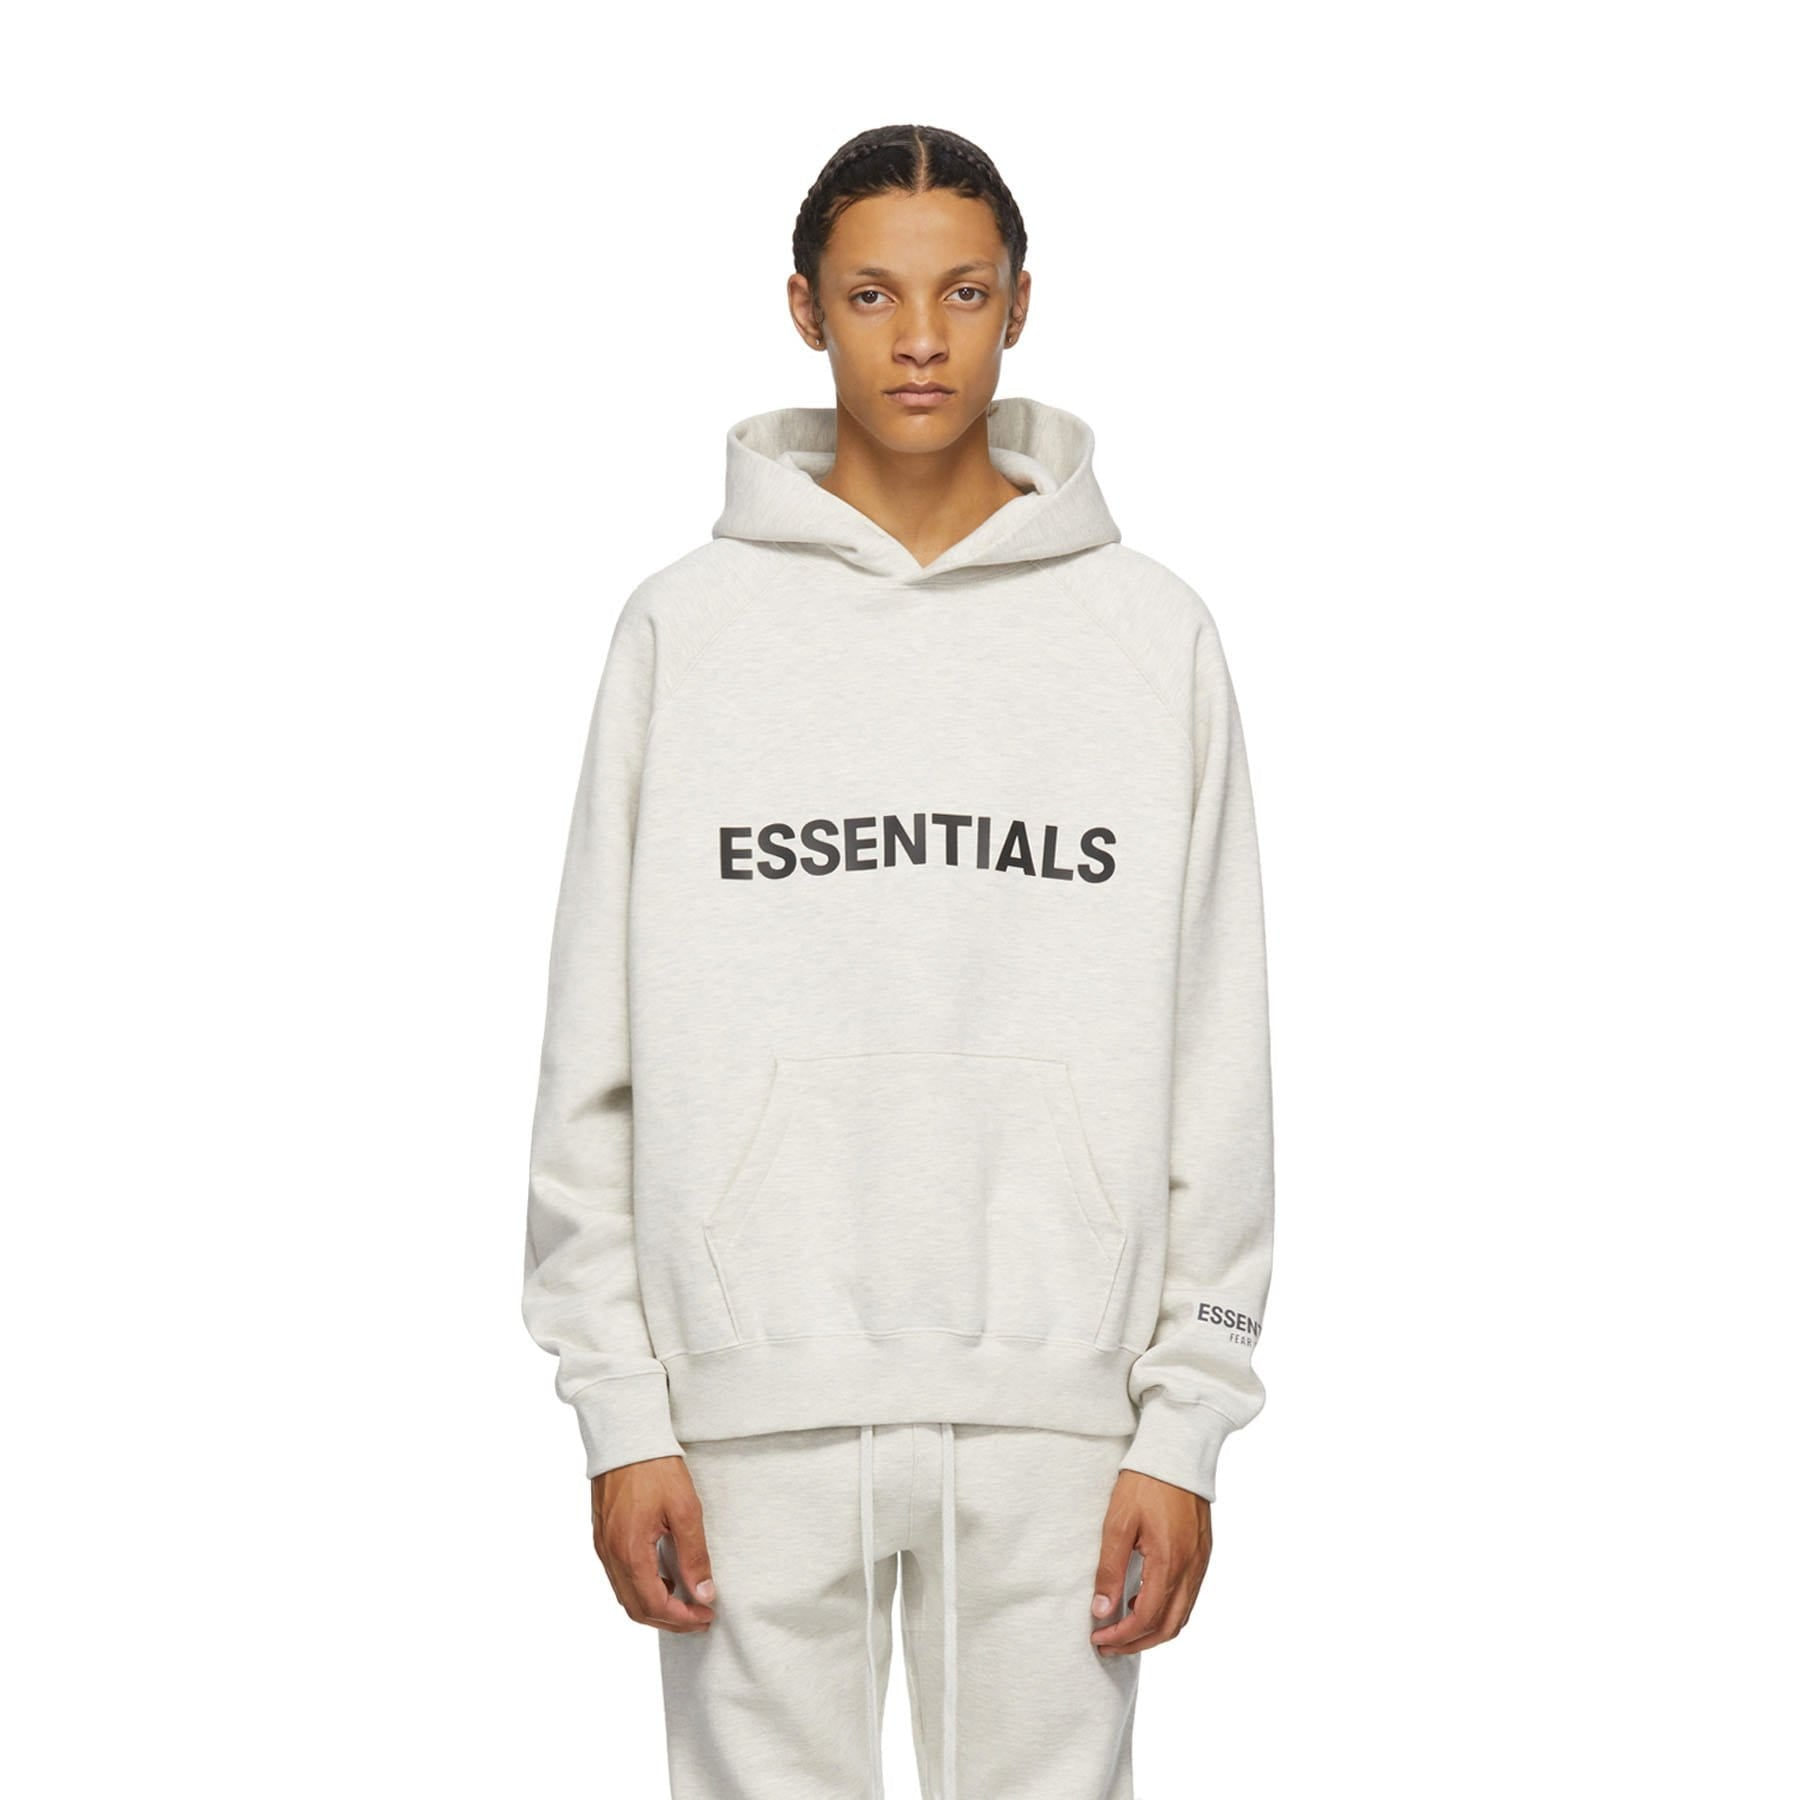 FEAR OF GOD ESSENTIALS 3D Silicon Applique Pullover Hoodie Heather Oatmeal - Kick Game